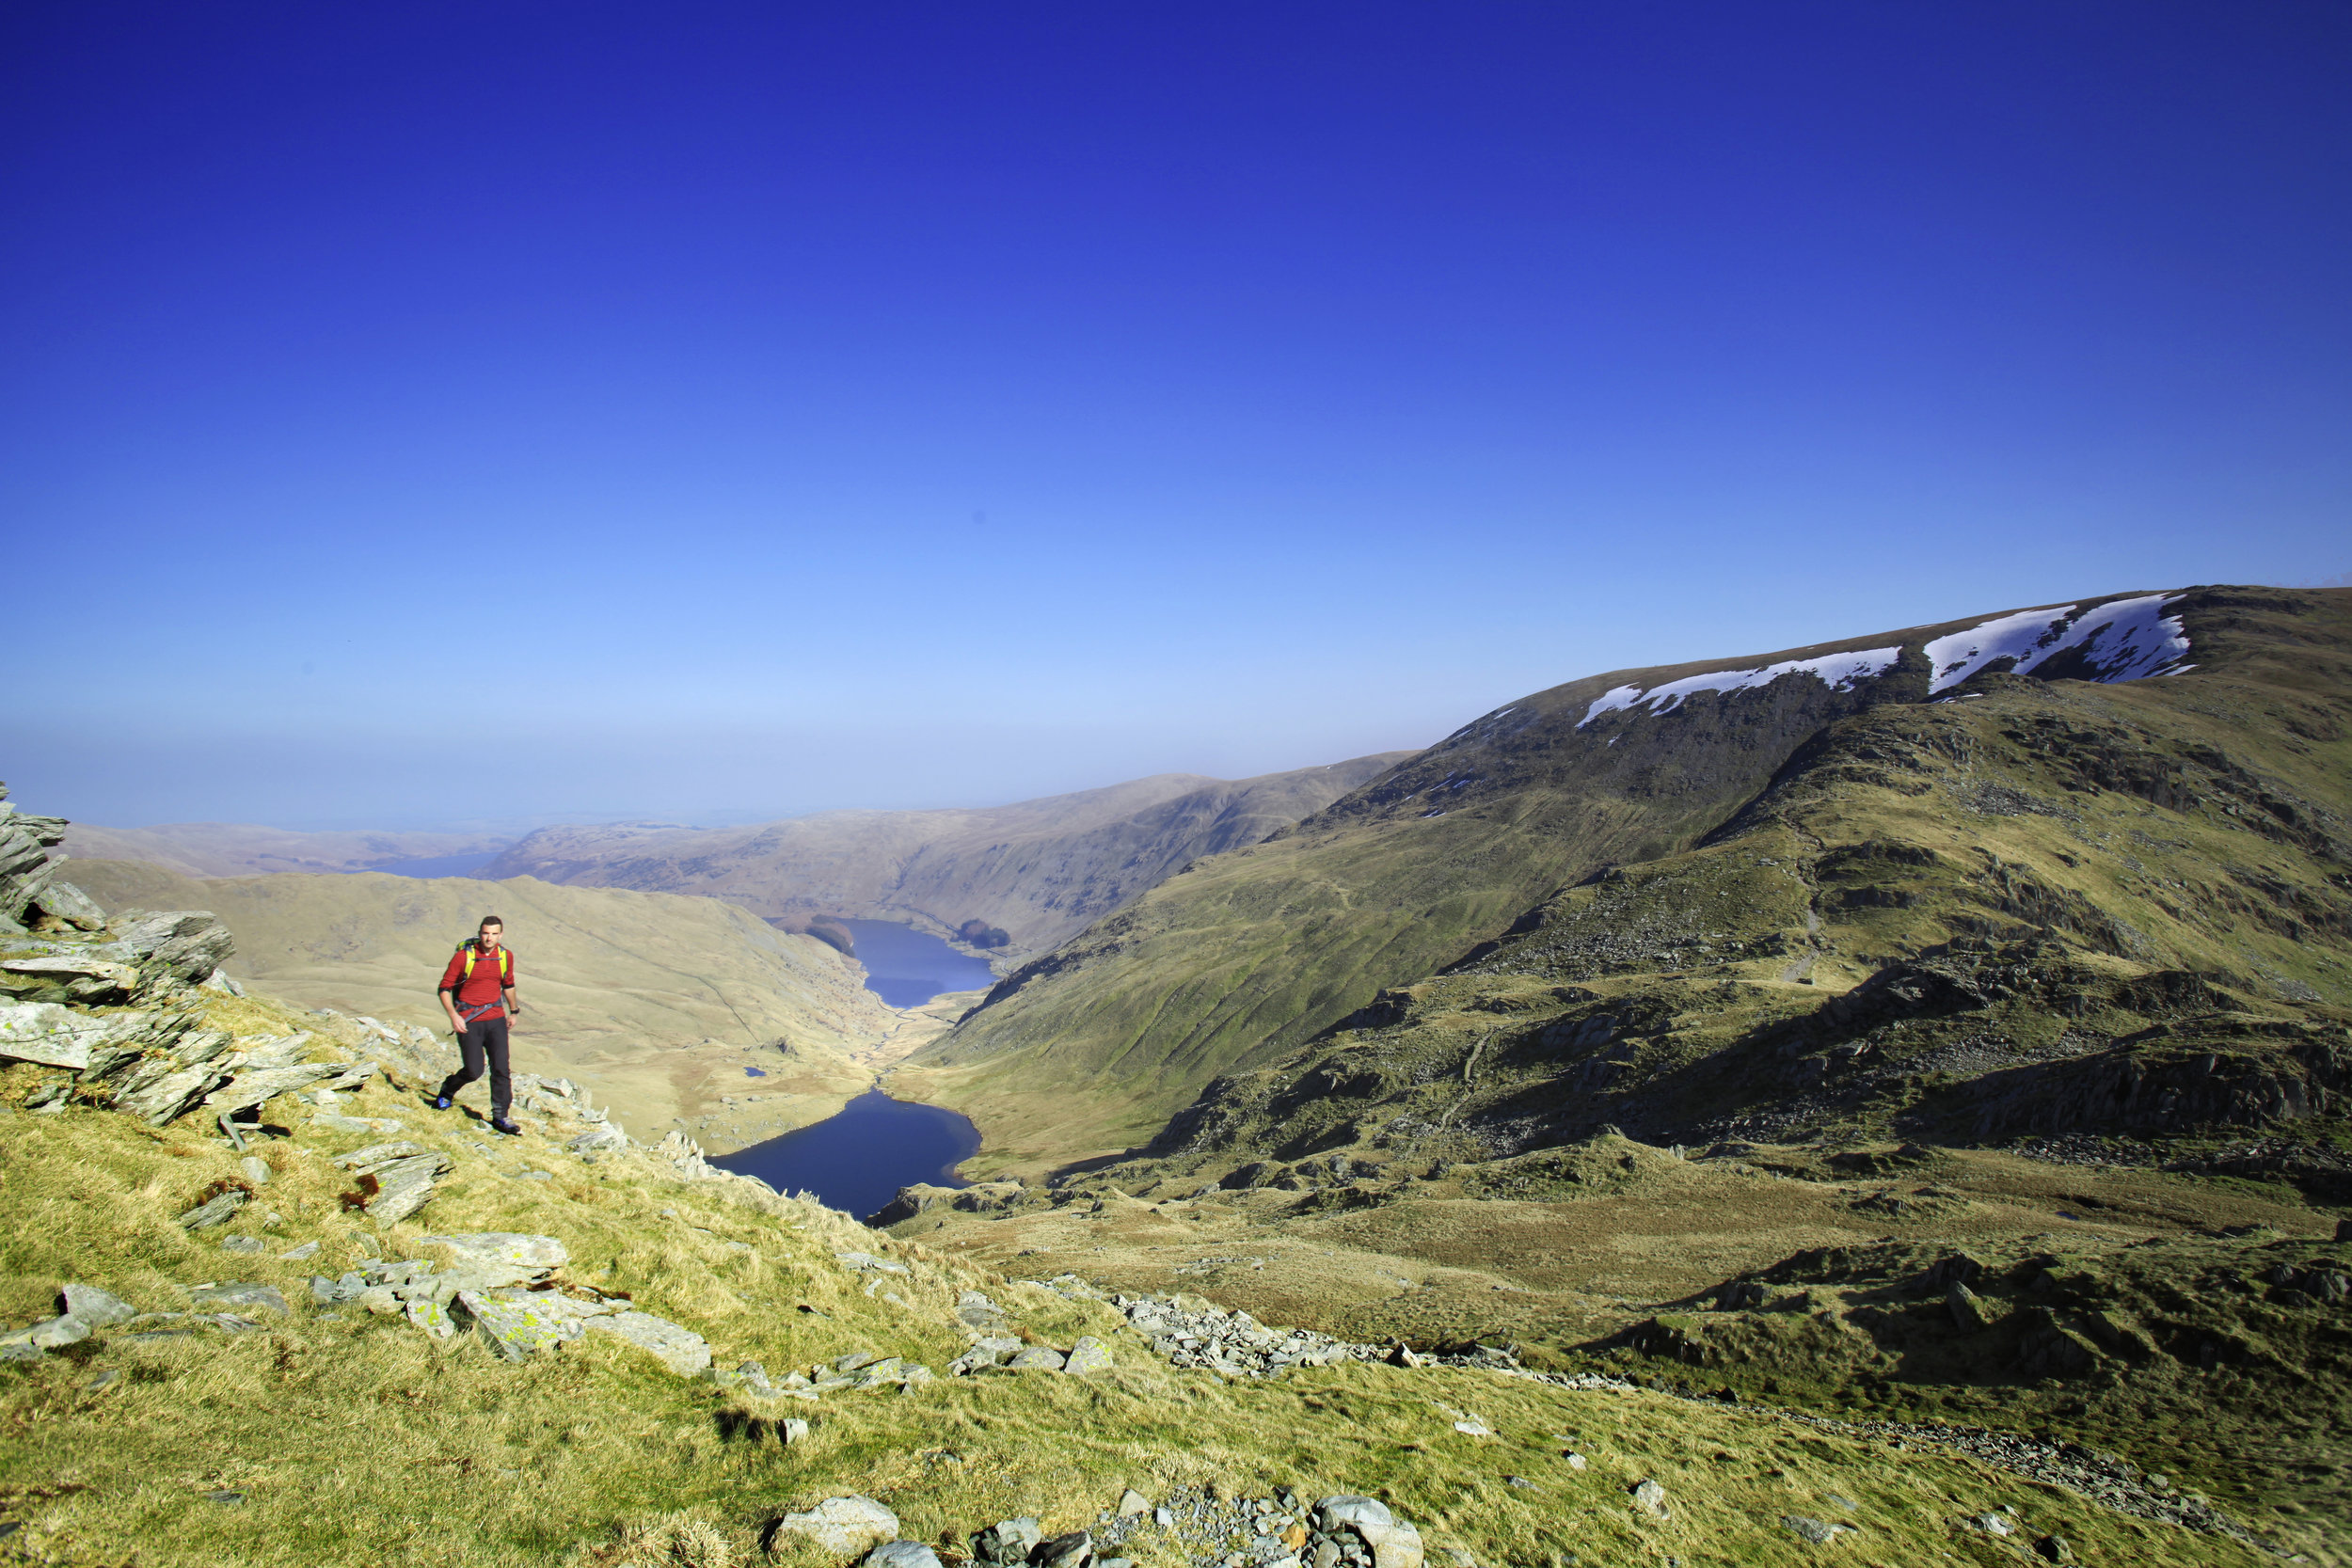 Heralding the stunning scenery around High Street in the Eastern Fells of the Lakes.